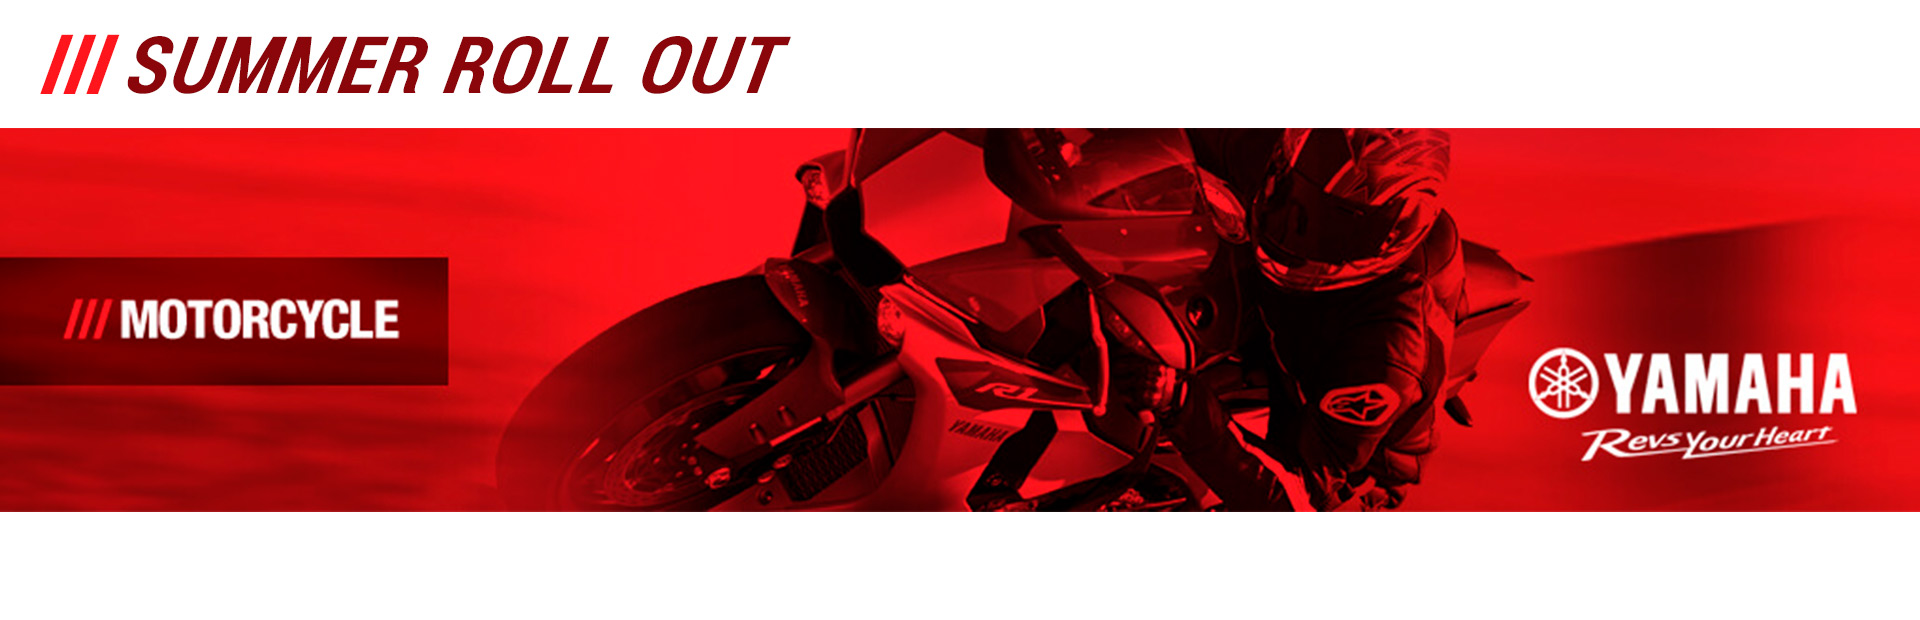 Yamaha: SUMMER ROLL OUT